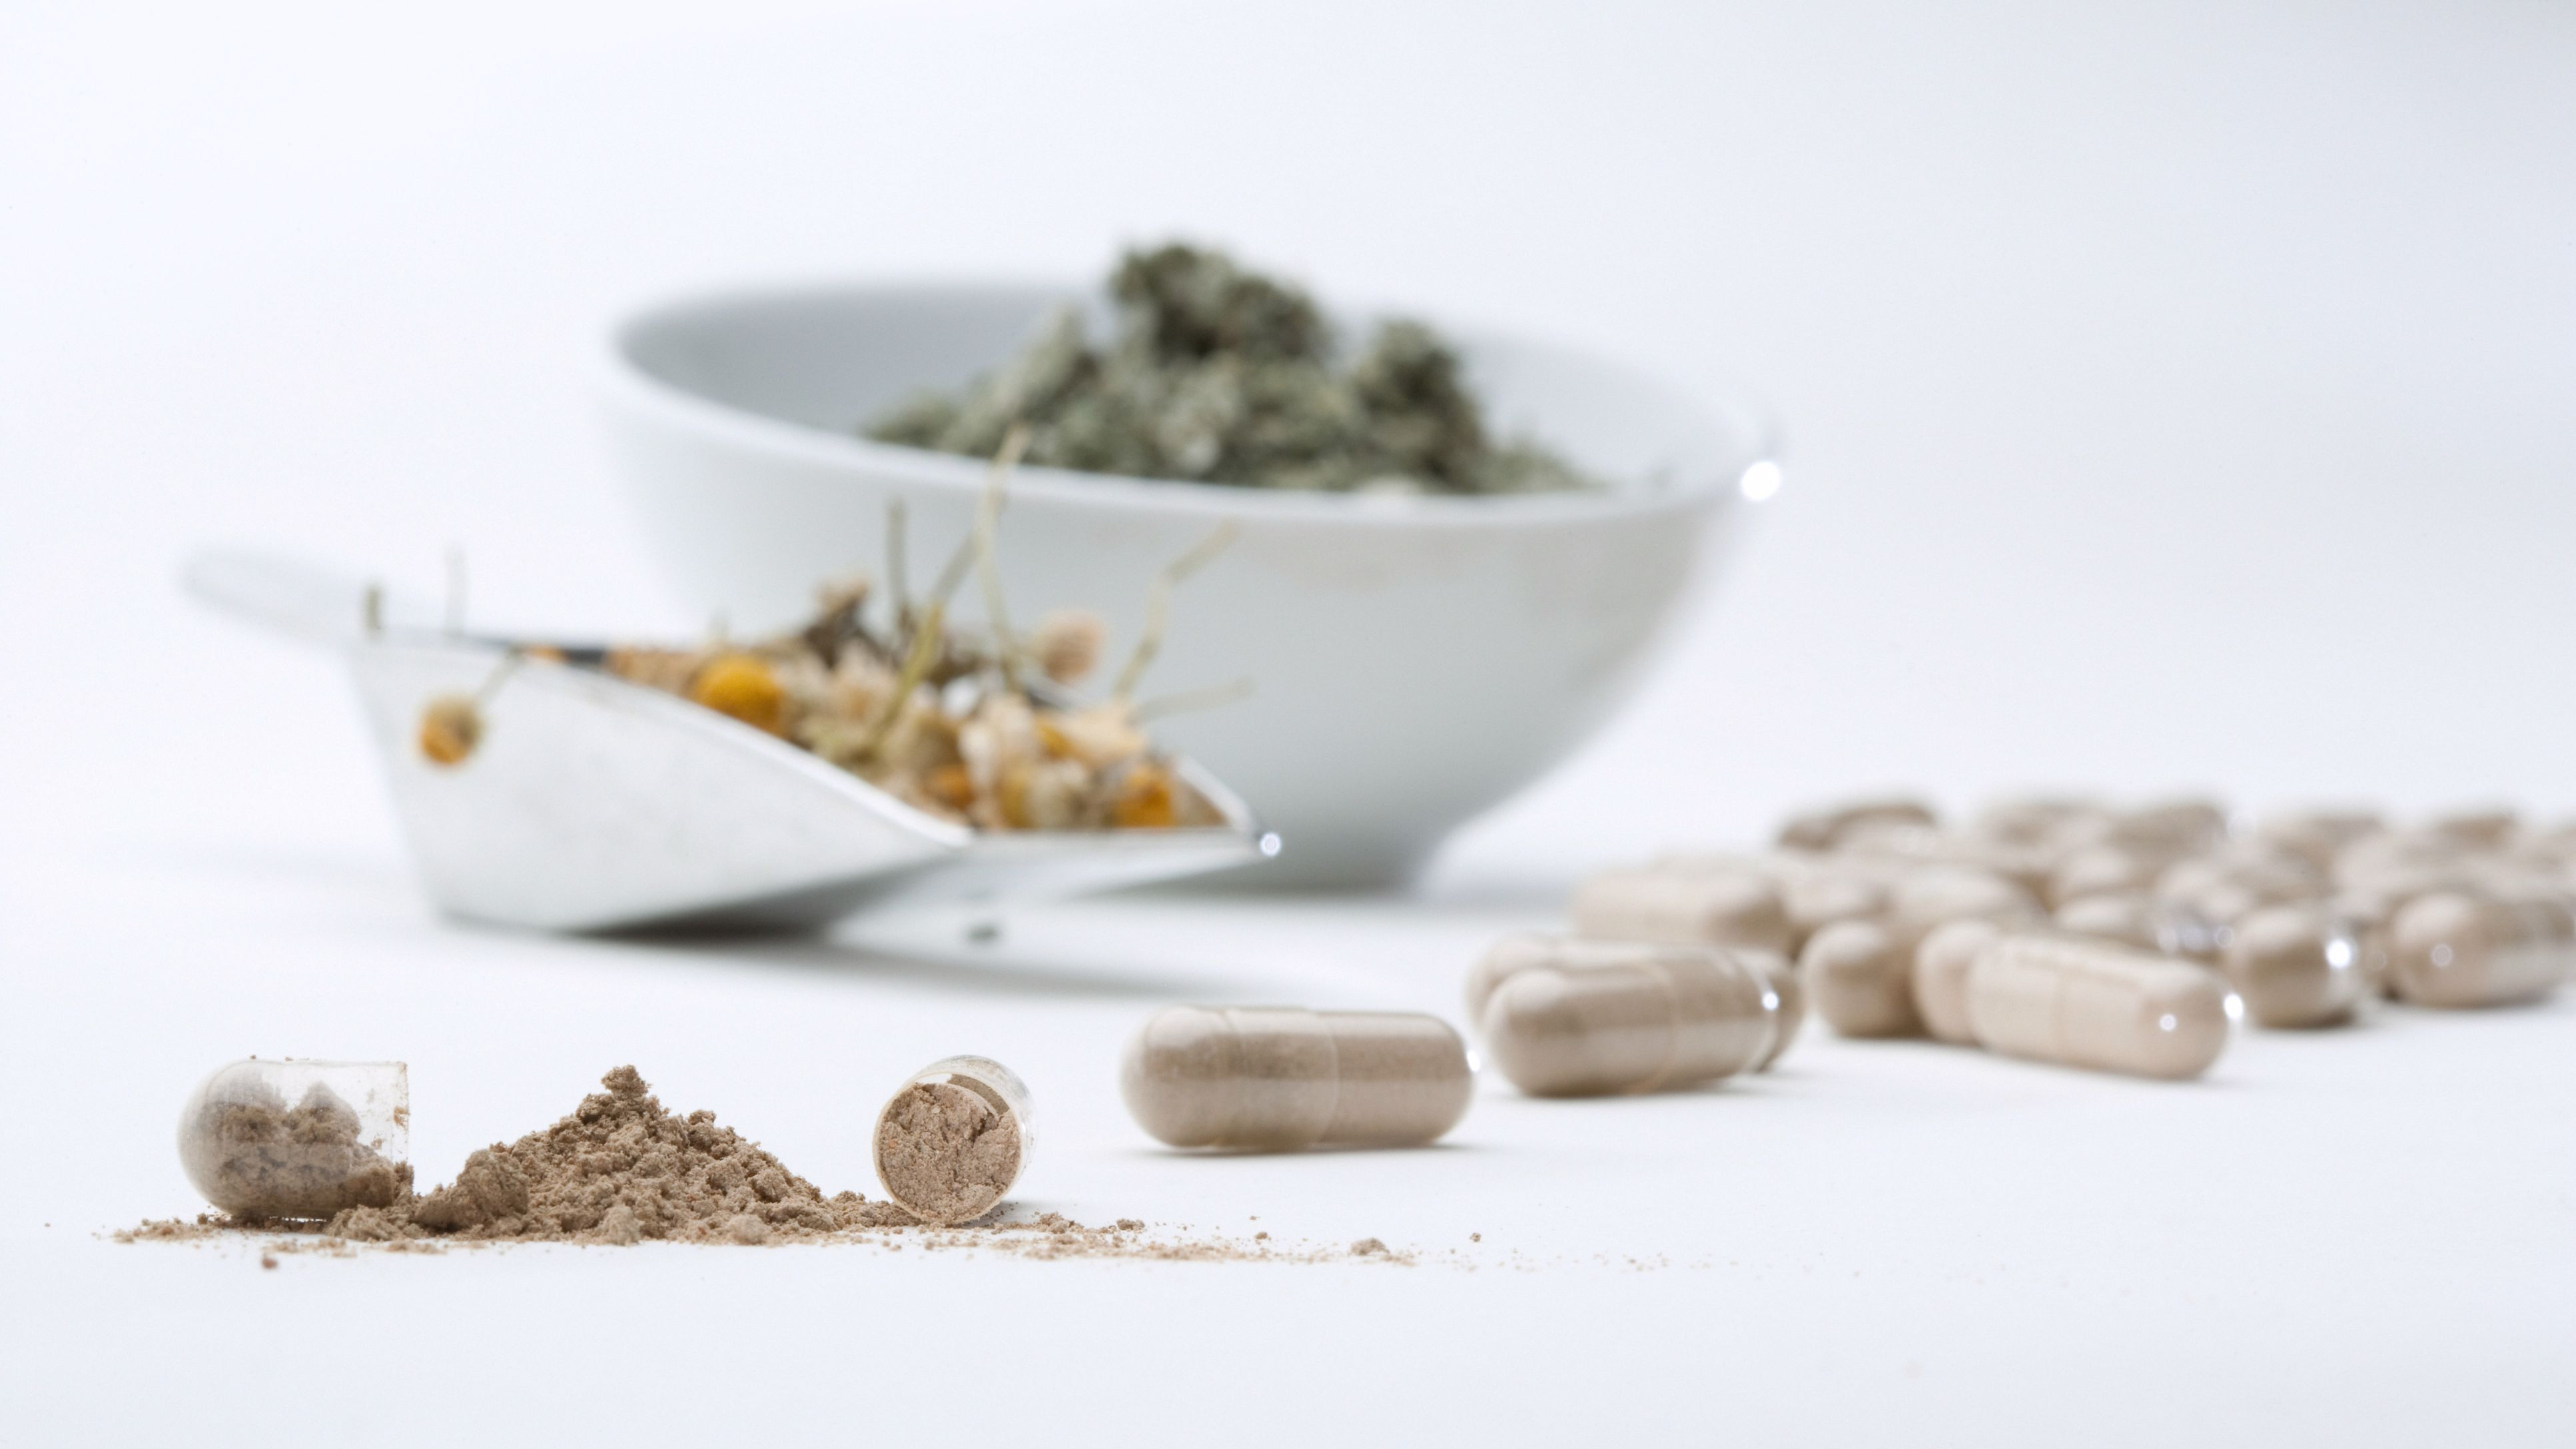 Herbs and Natural Remedies for IBS